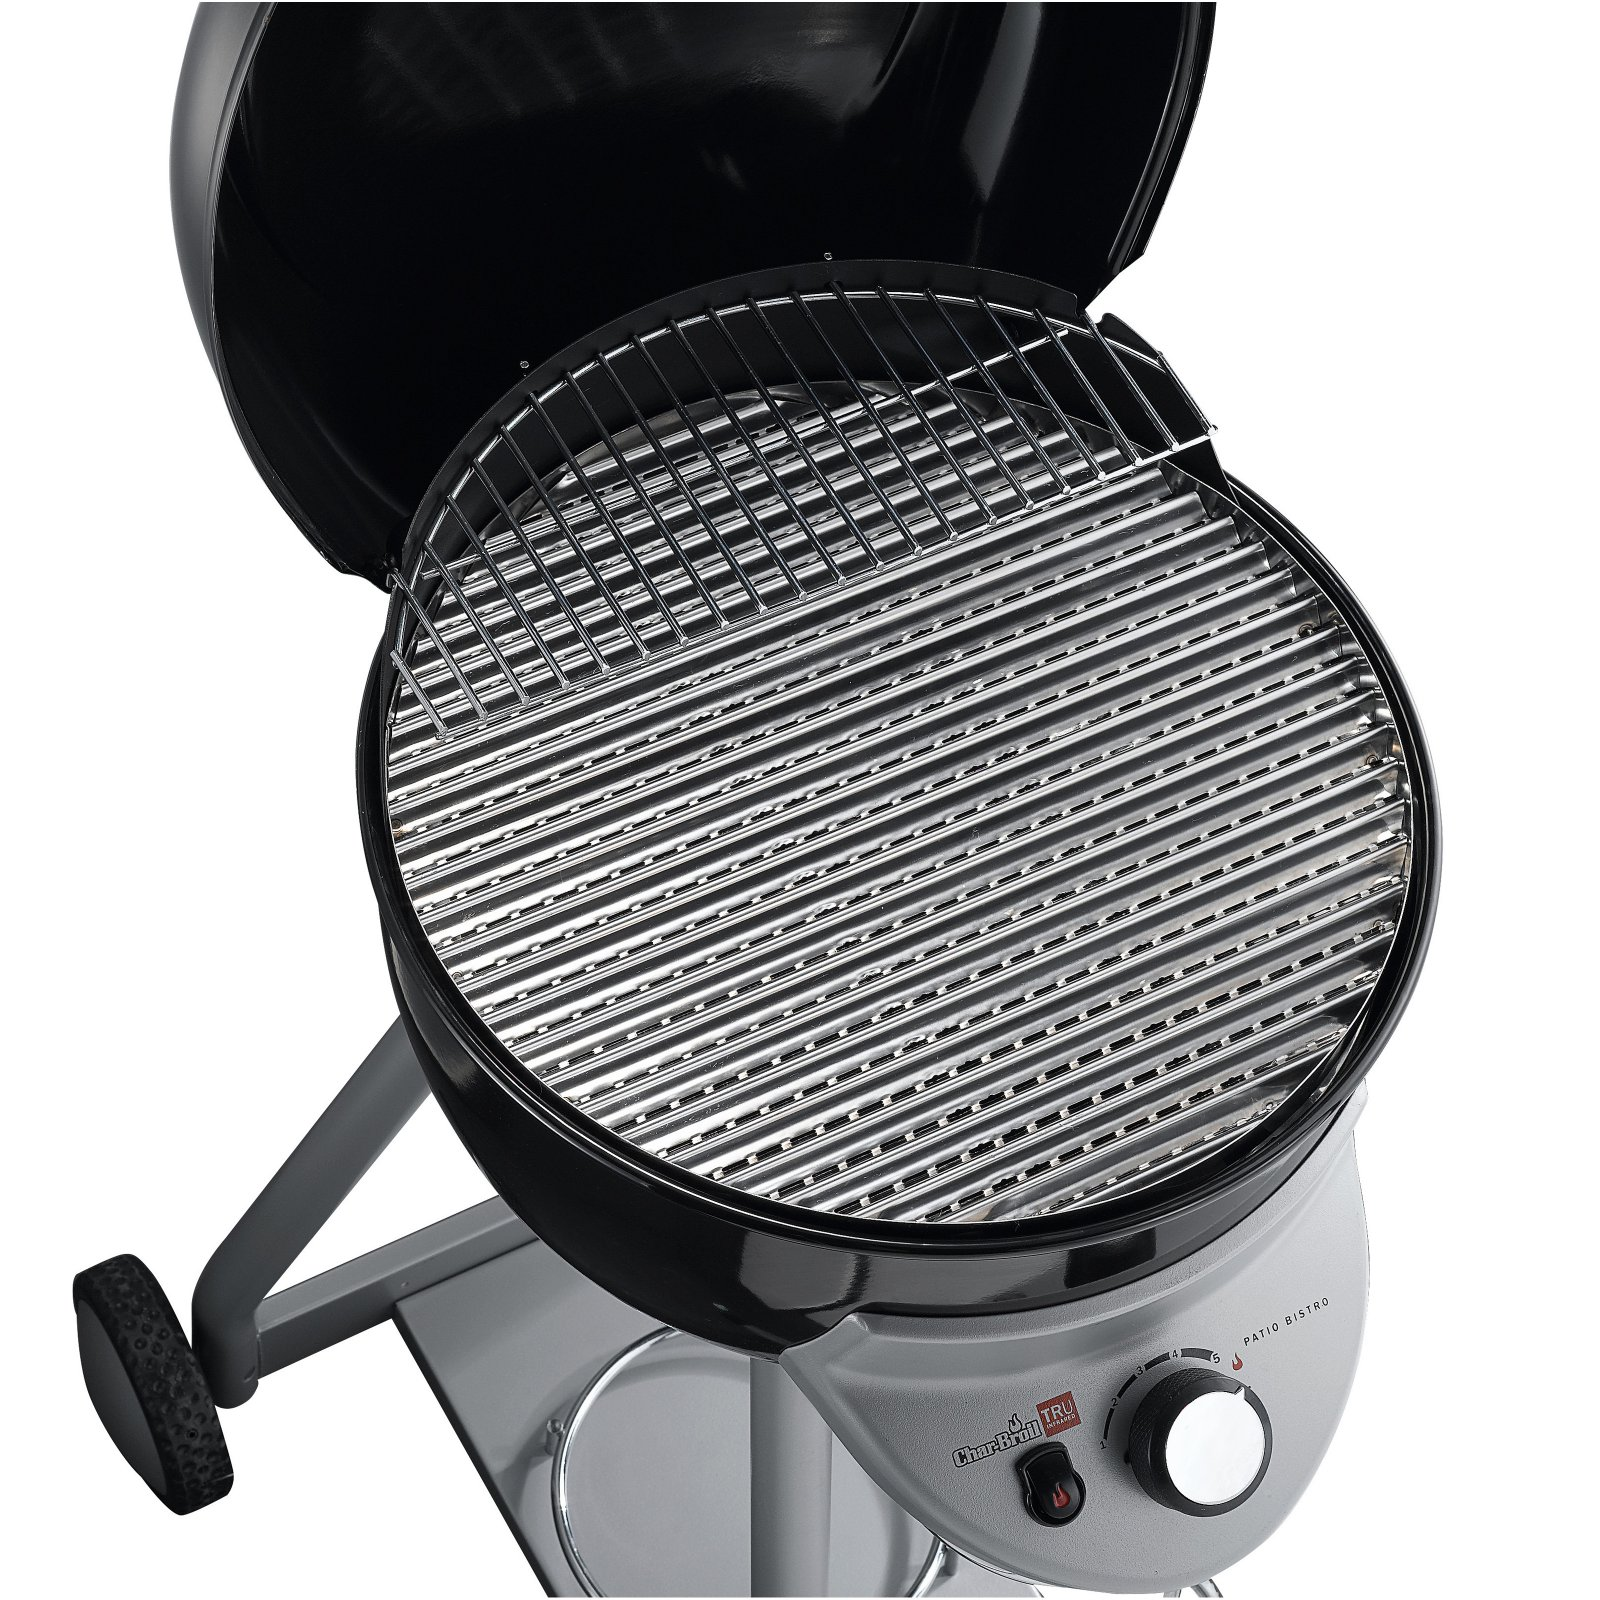 x bistro amazing you graphite char tru infrared youtube broil grill electric patio